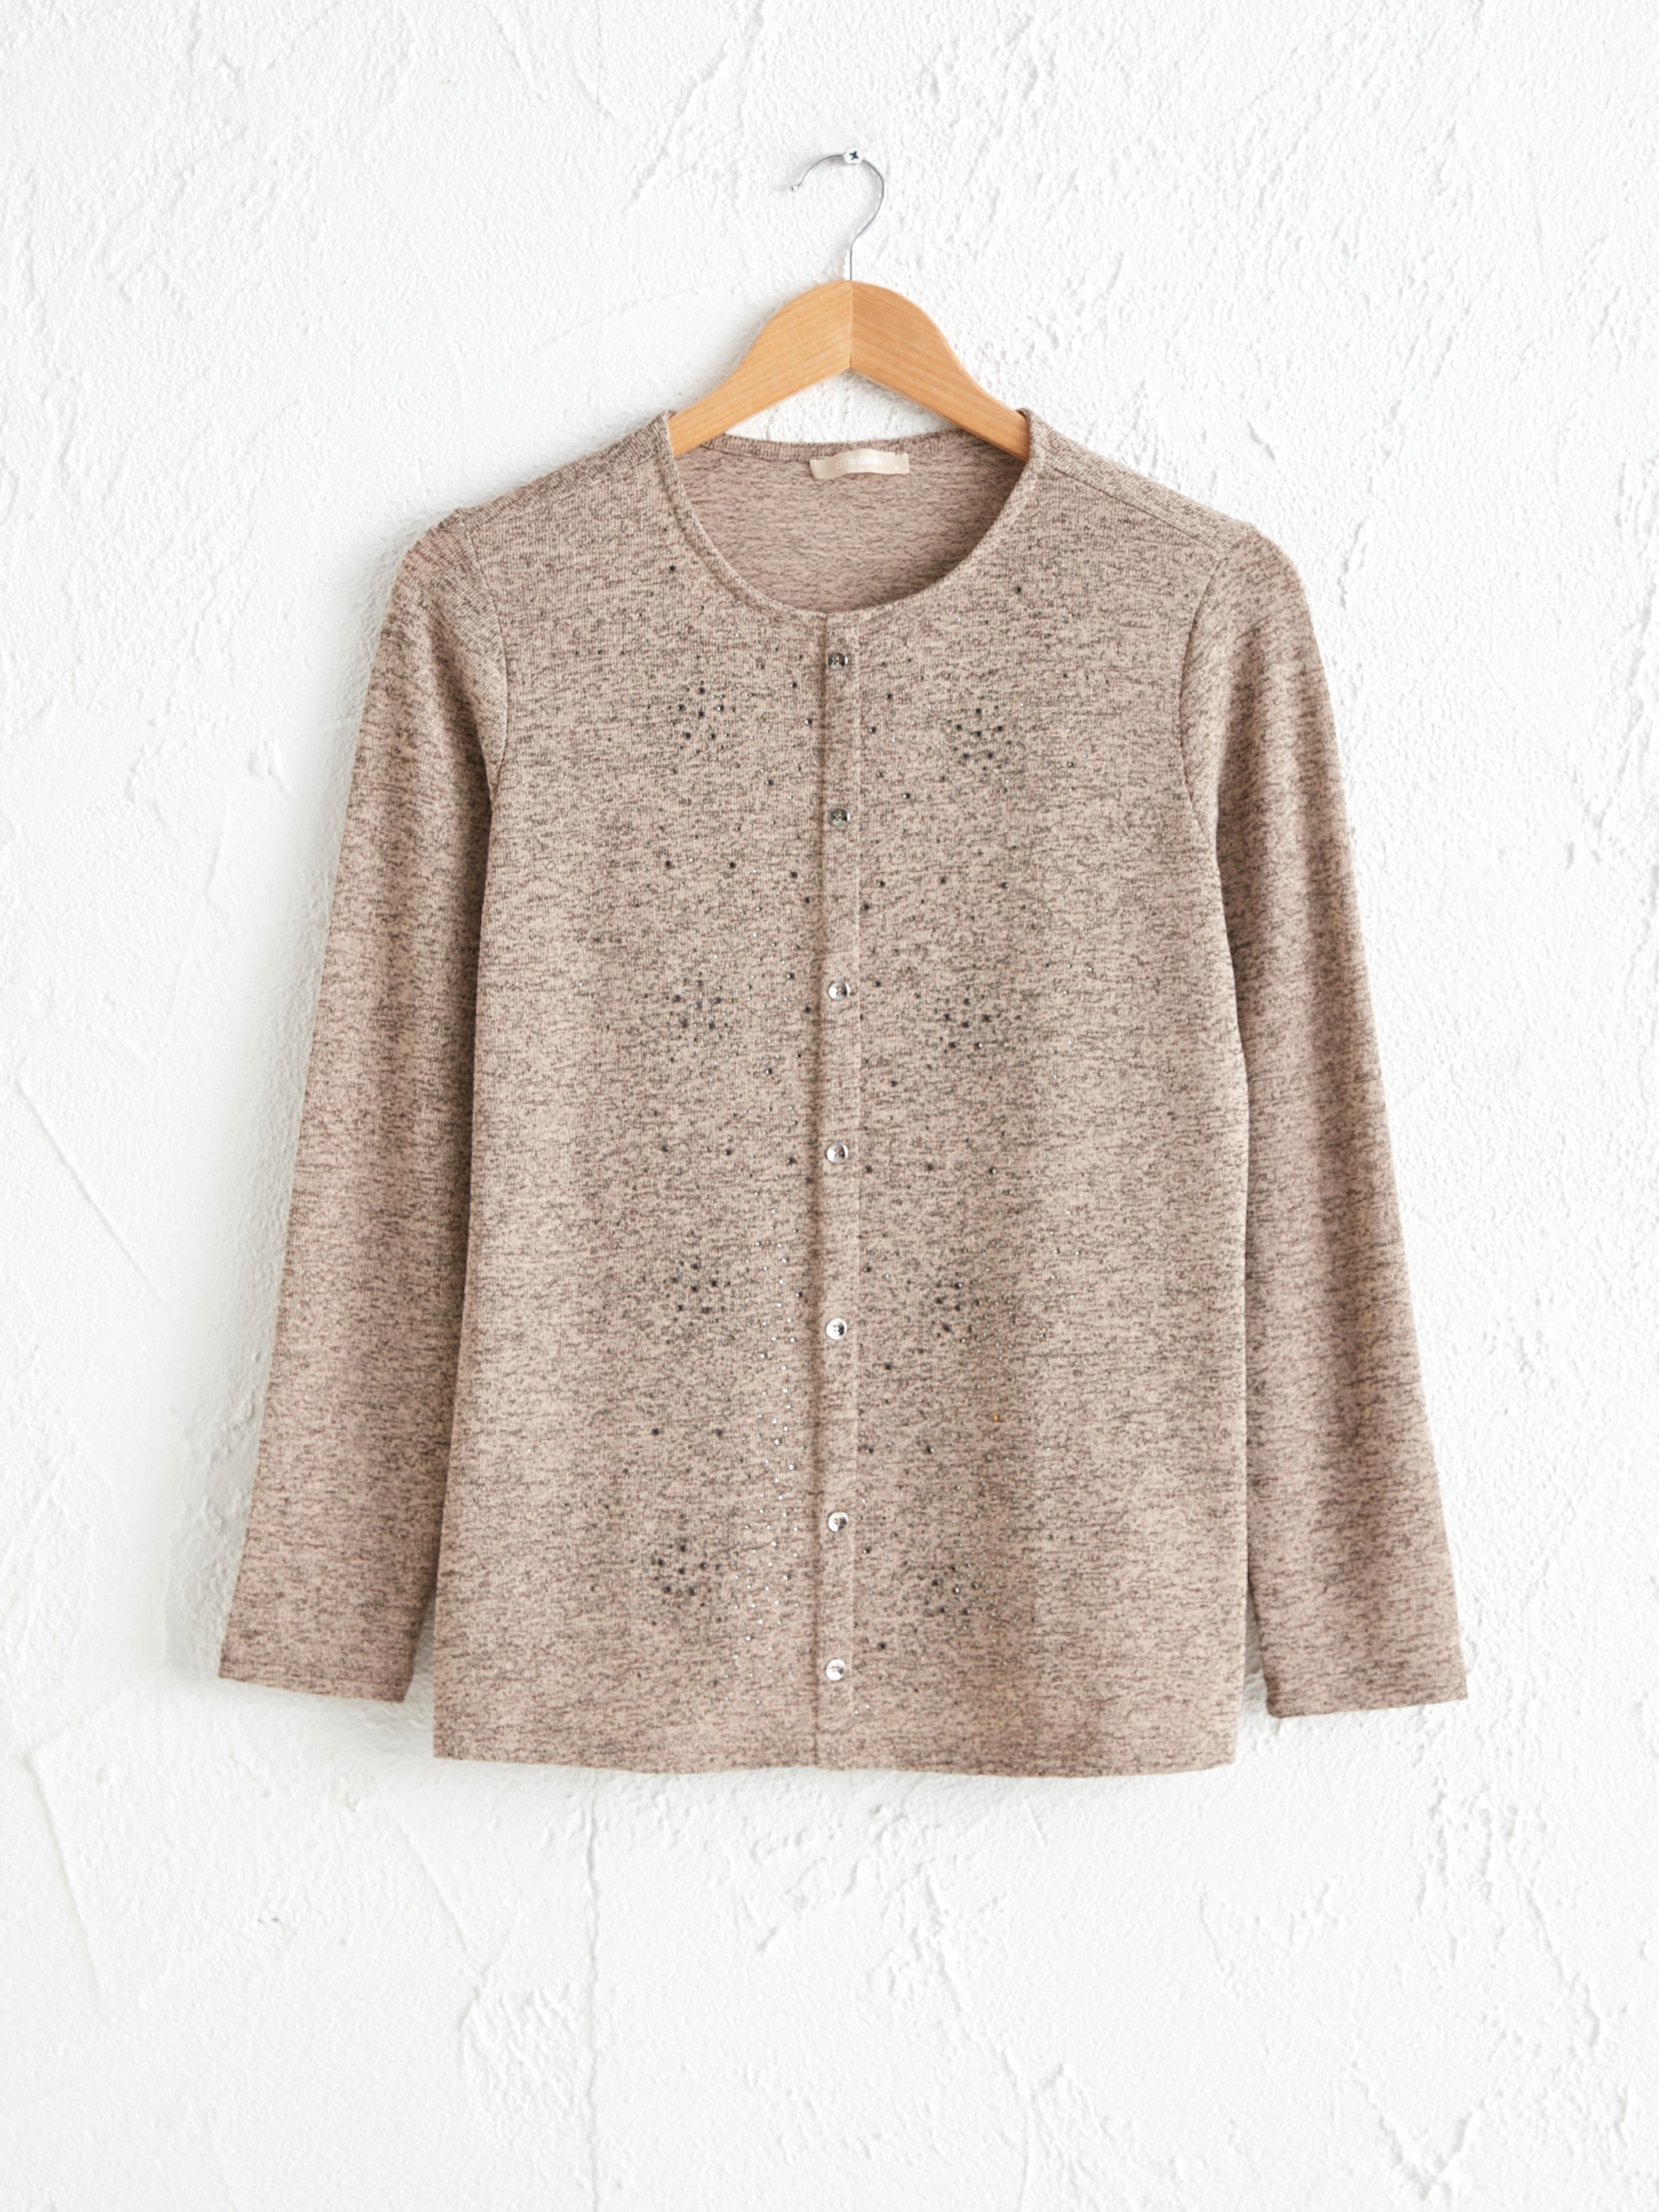 BEIGE - Long Sleeve T-Shirt with Button Detail - 0WCN84Z8